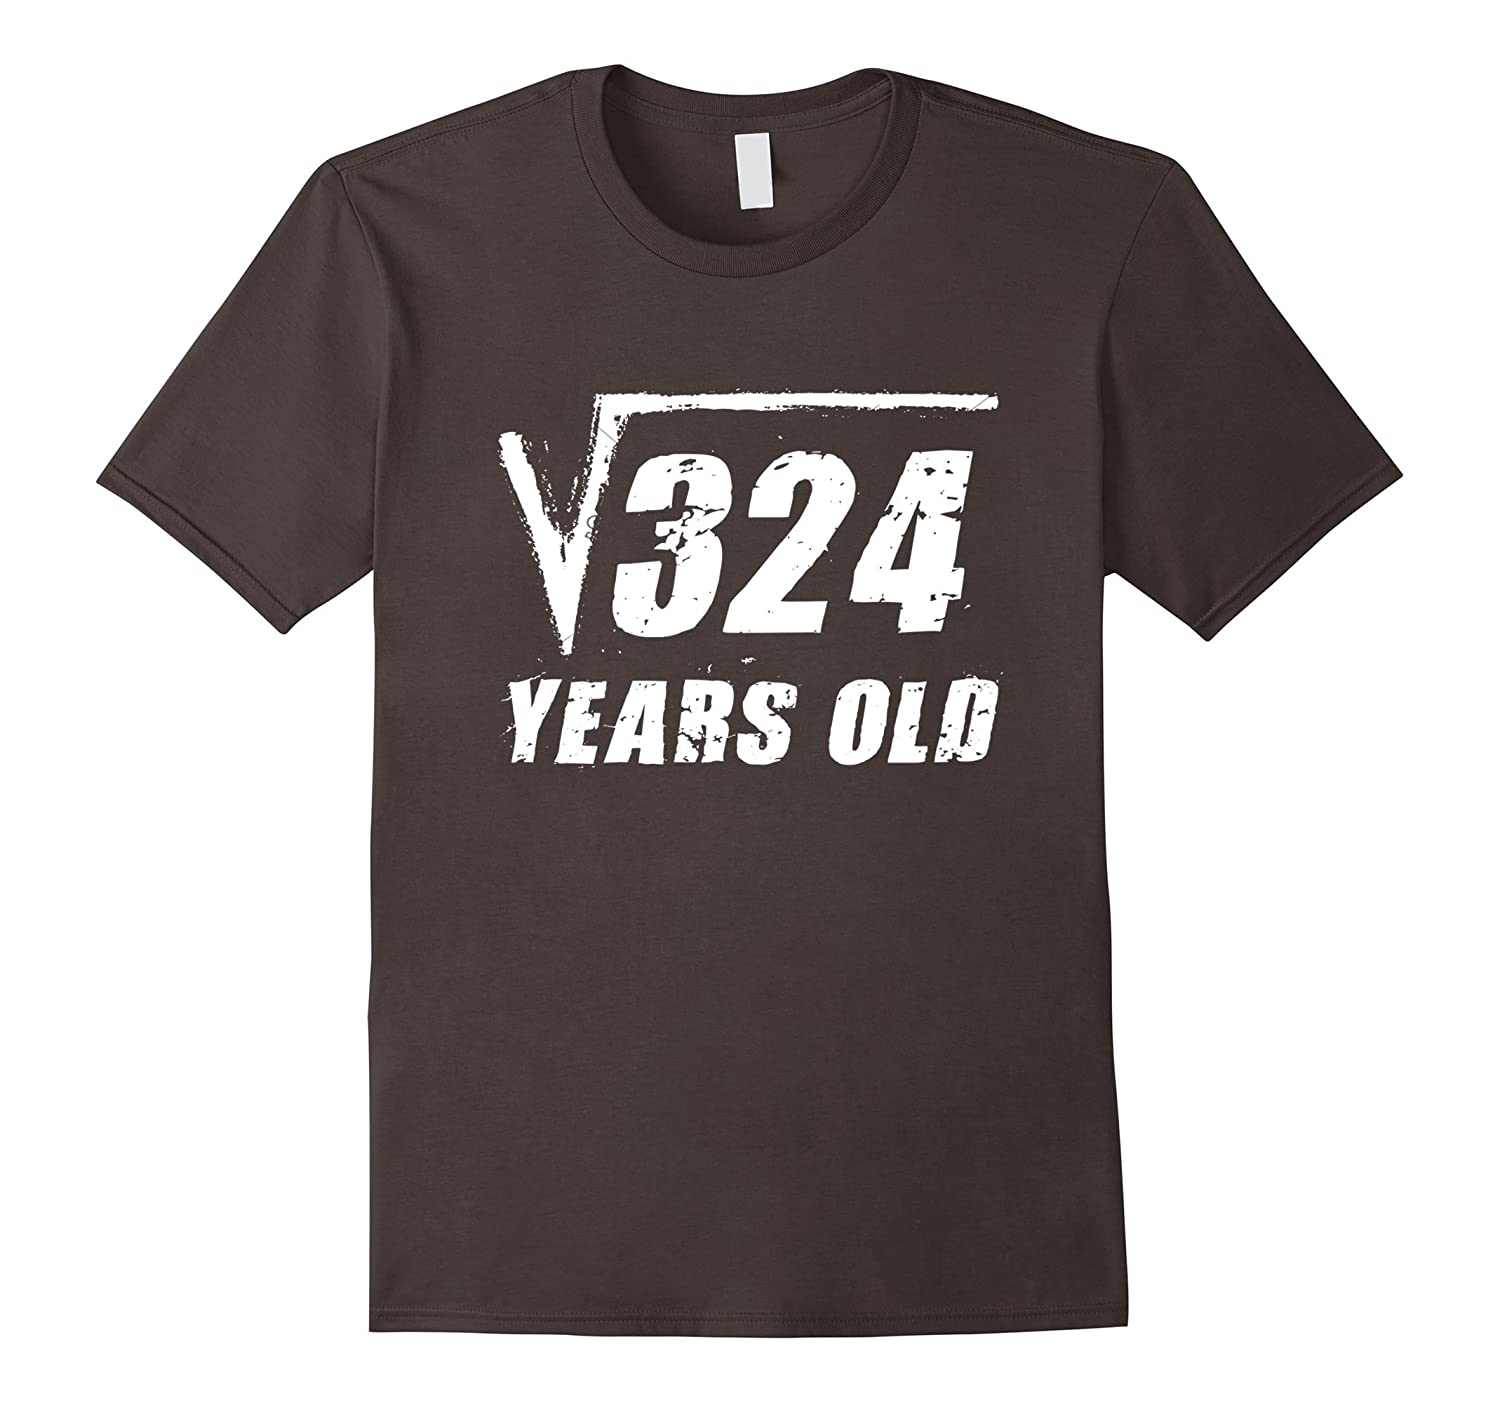 18 Year Old Square Root T Shirt Funny Birthday Gift Boy Girl ANZ